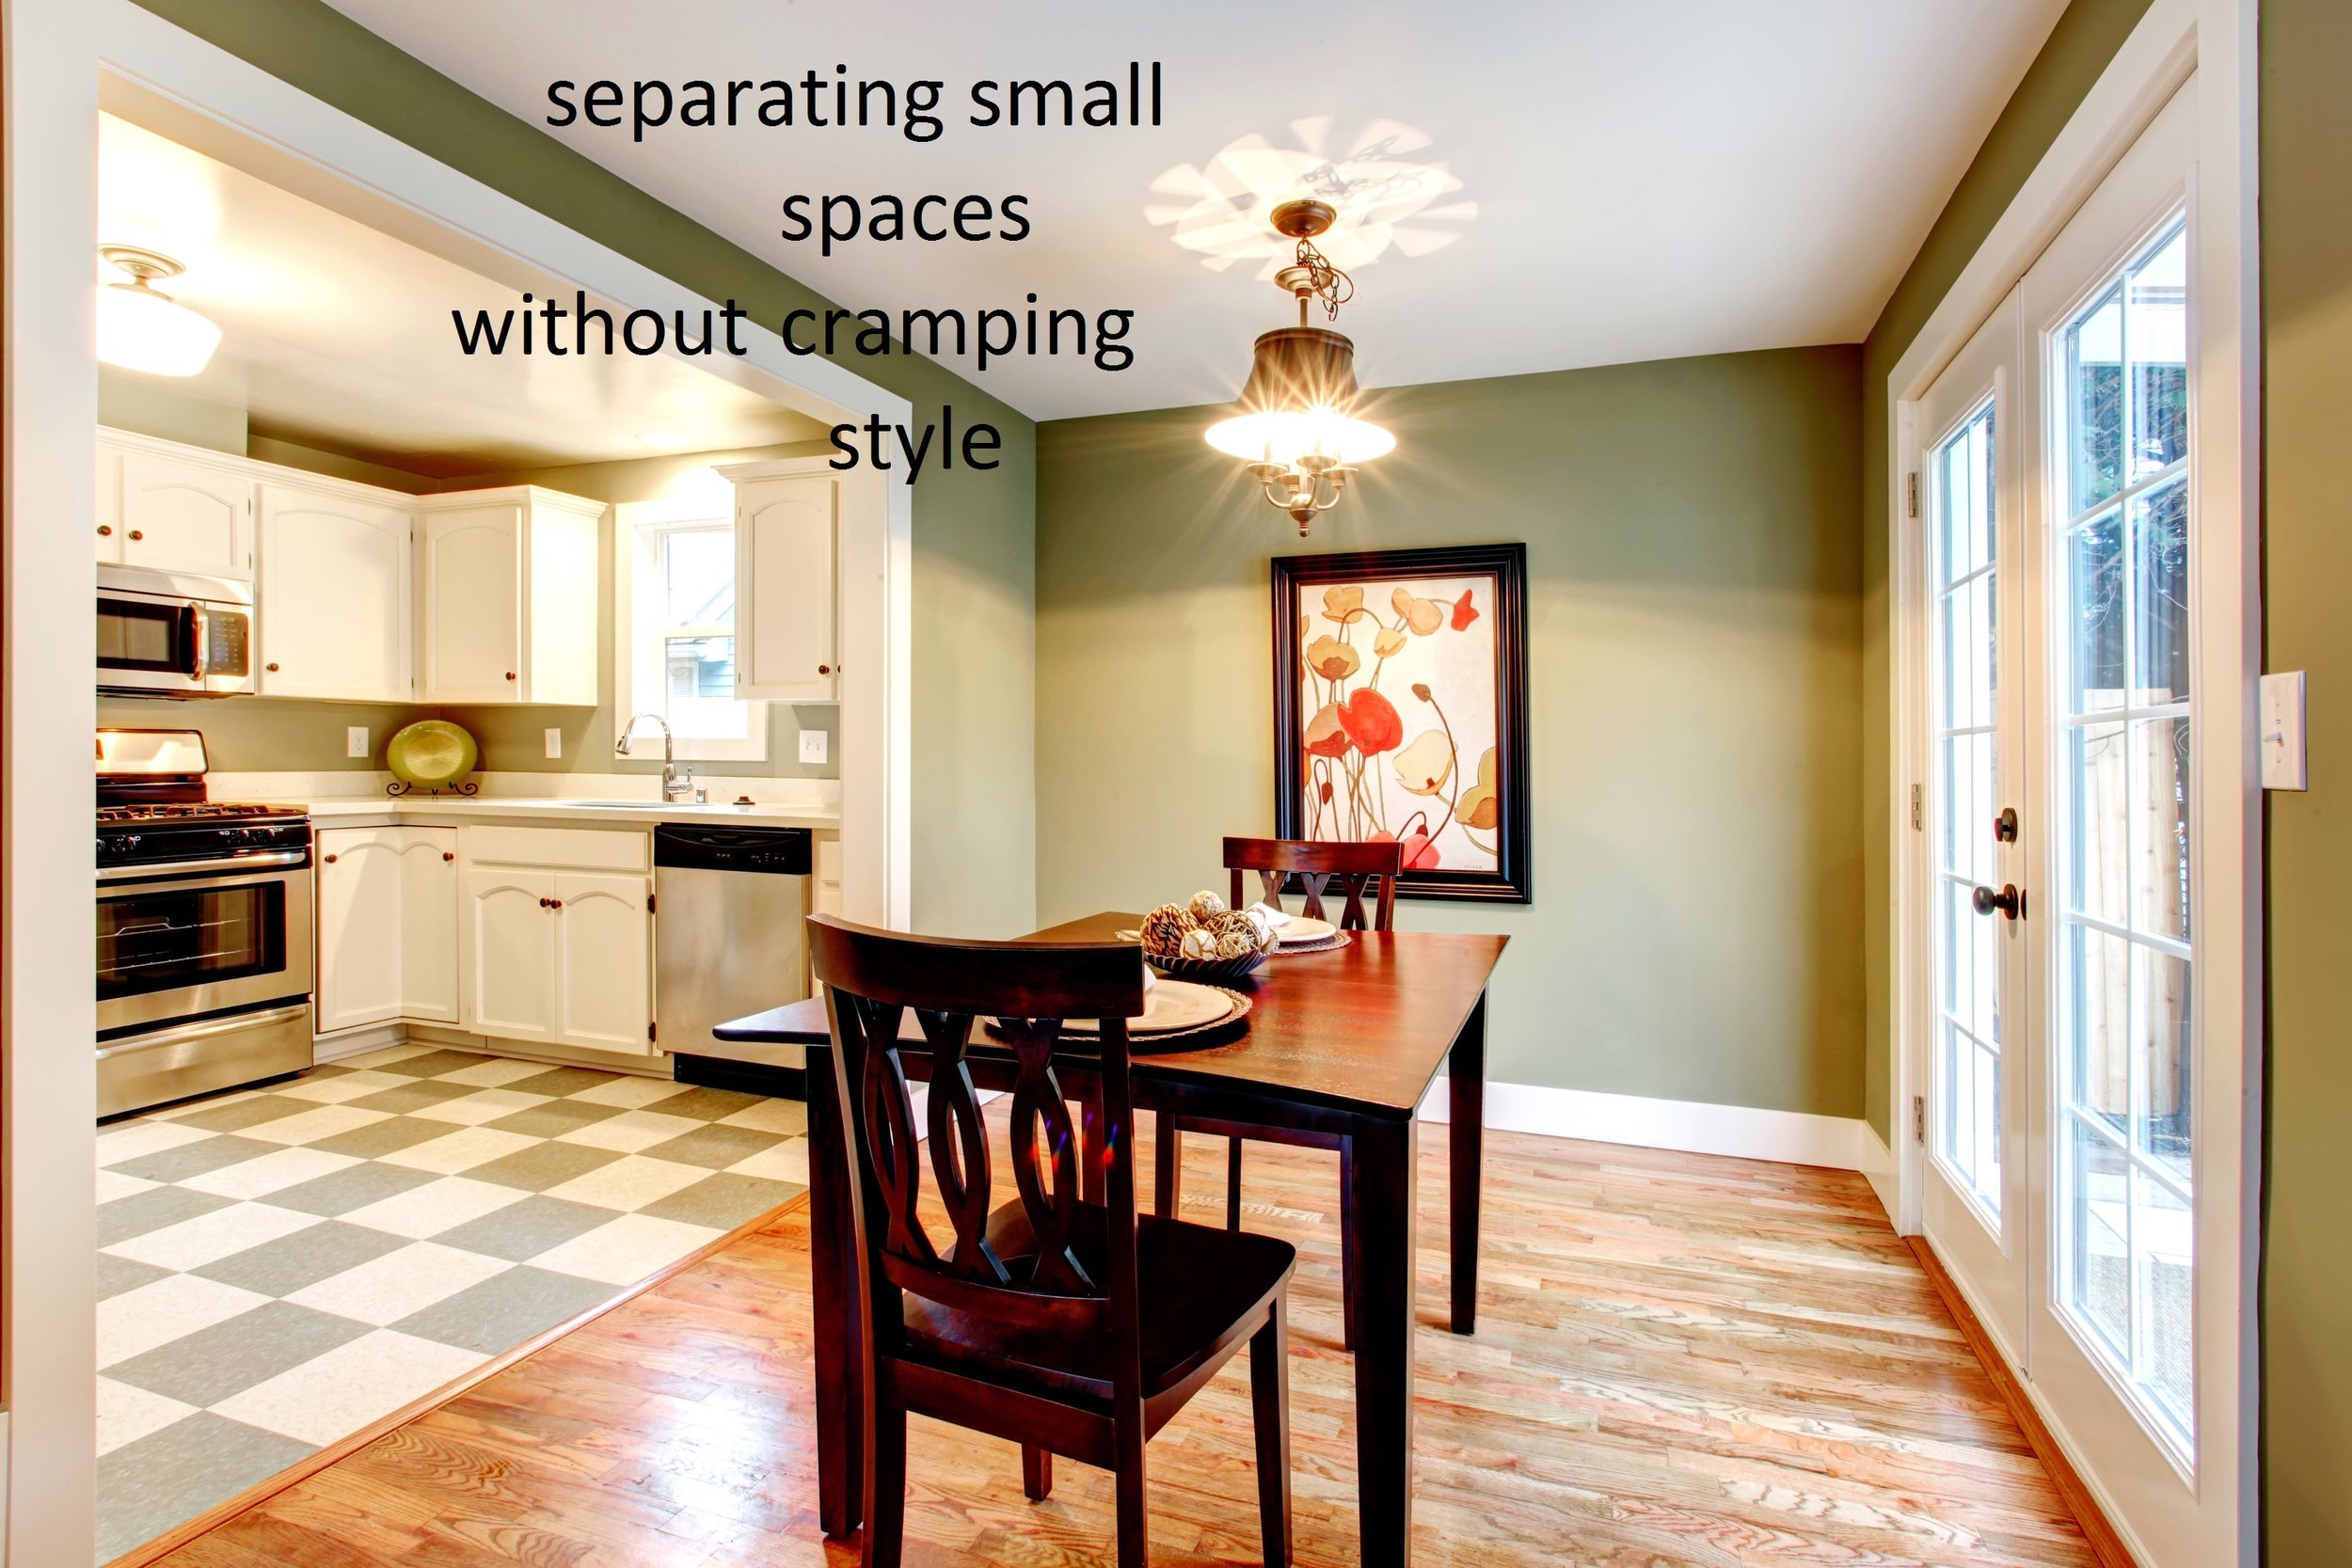 separating small spaces without cramping style.jpg